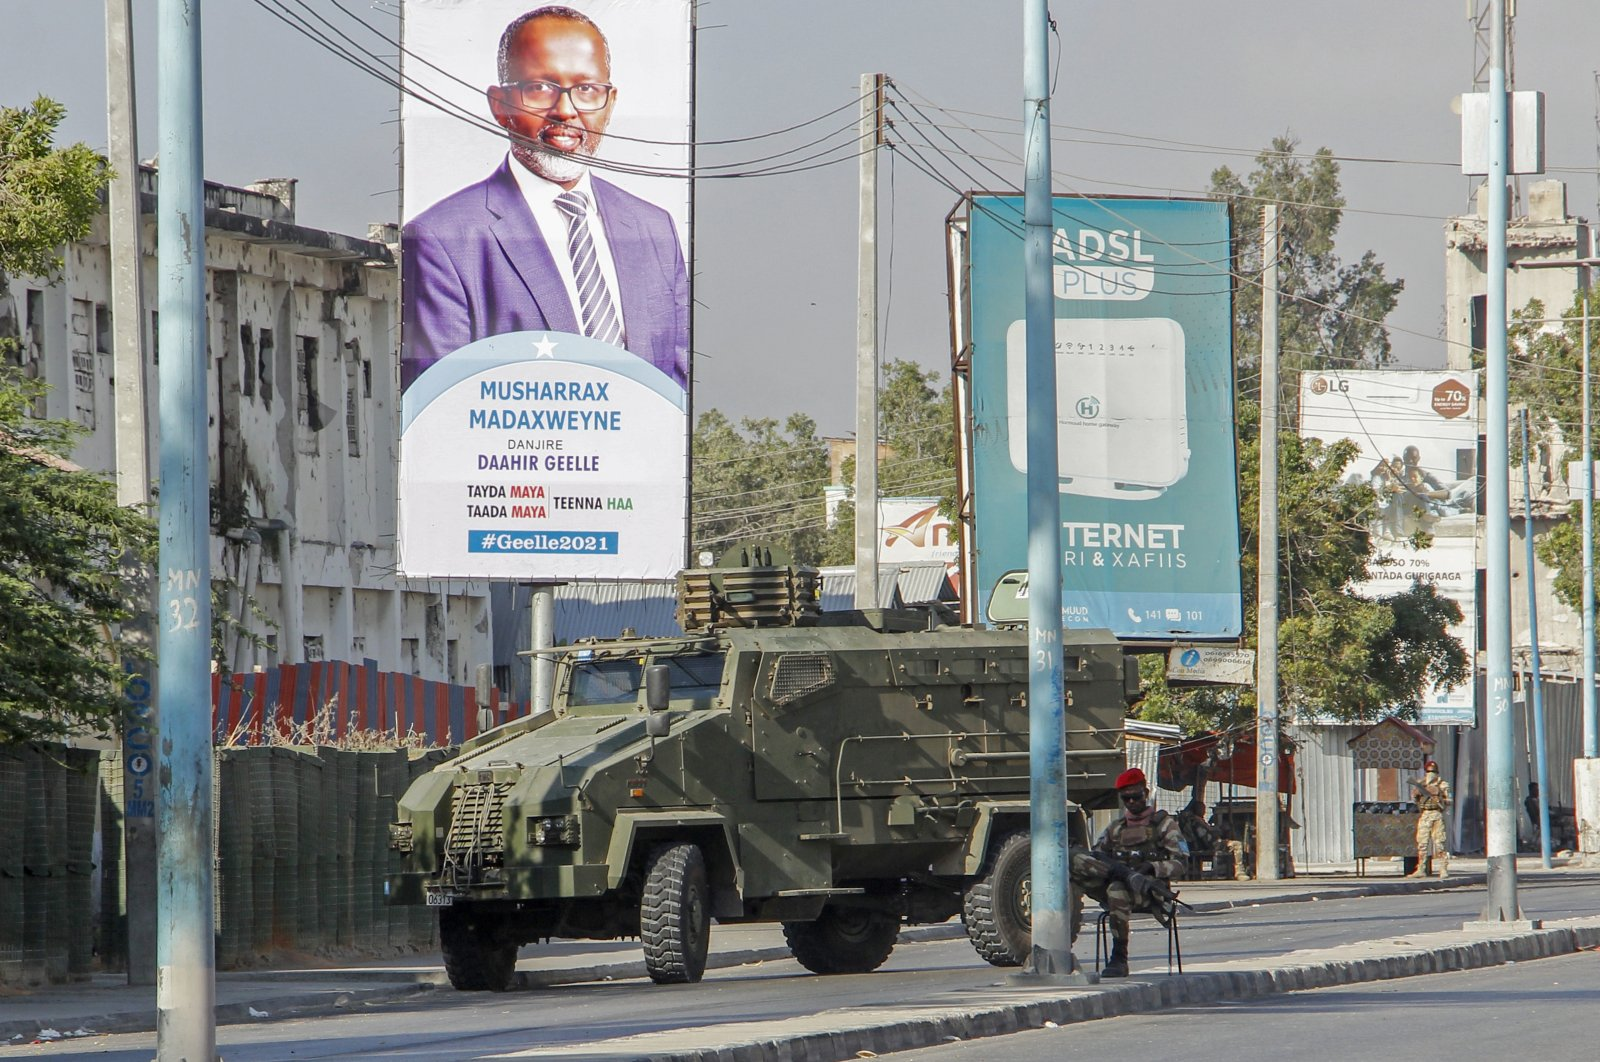 Security forces block a street with an armored personnel carrier during protests against the government and the delay of the country's election in the capital Mogadishu, Somalia, Feb. 19, 2021. (AP Photo)